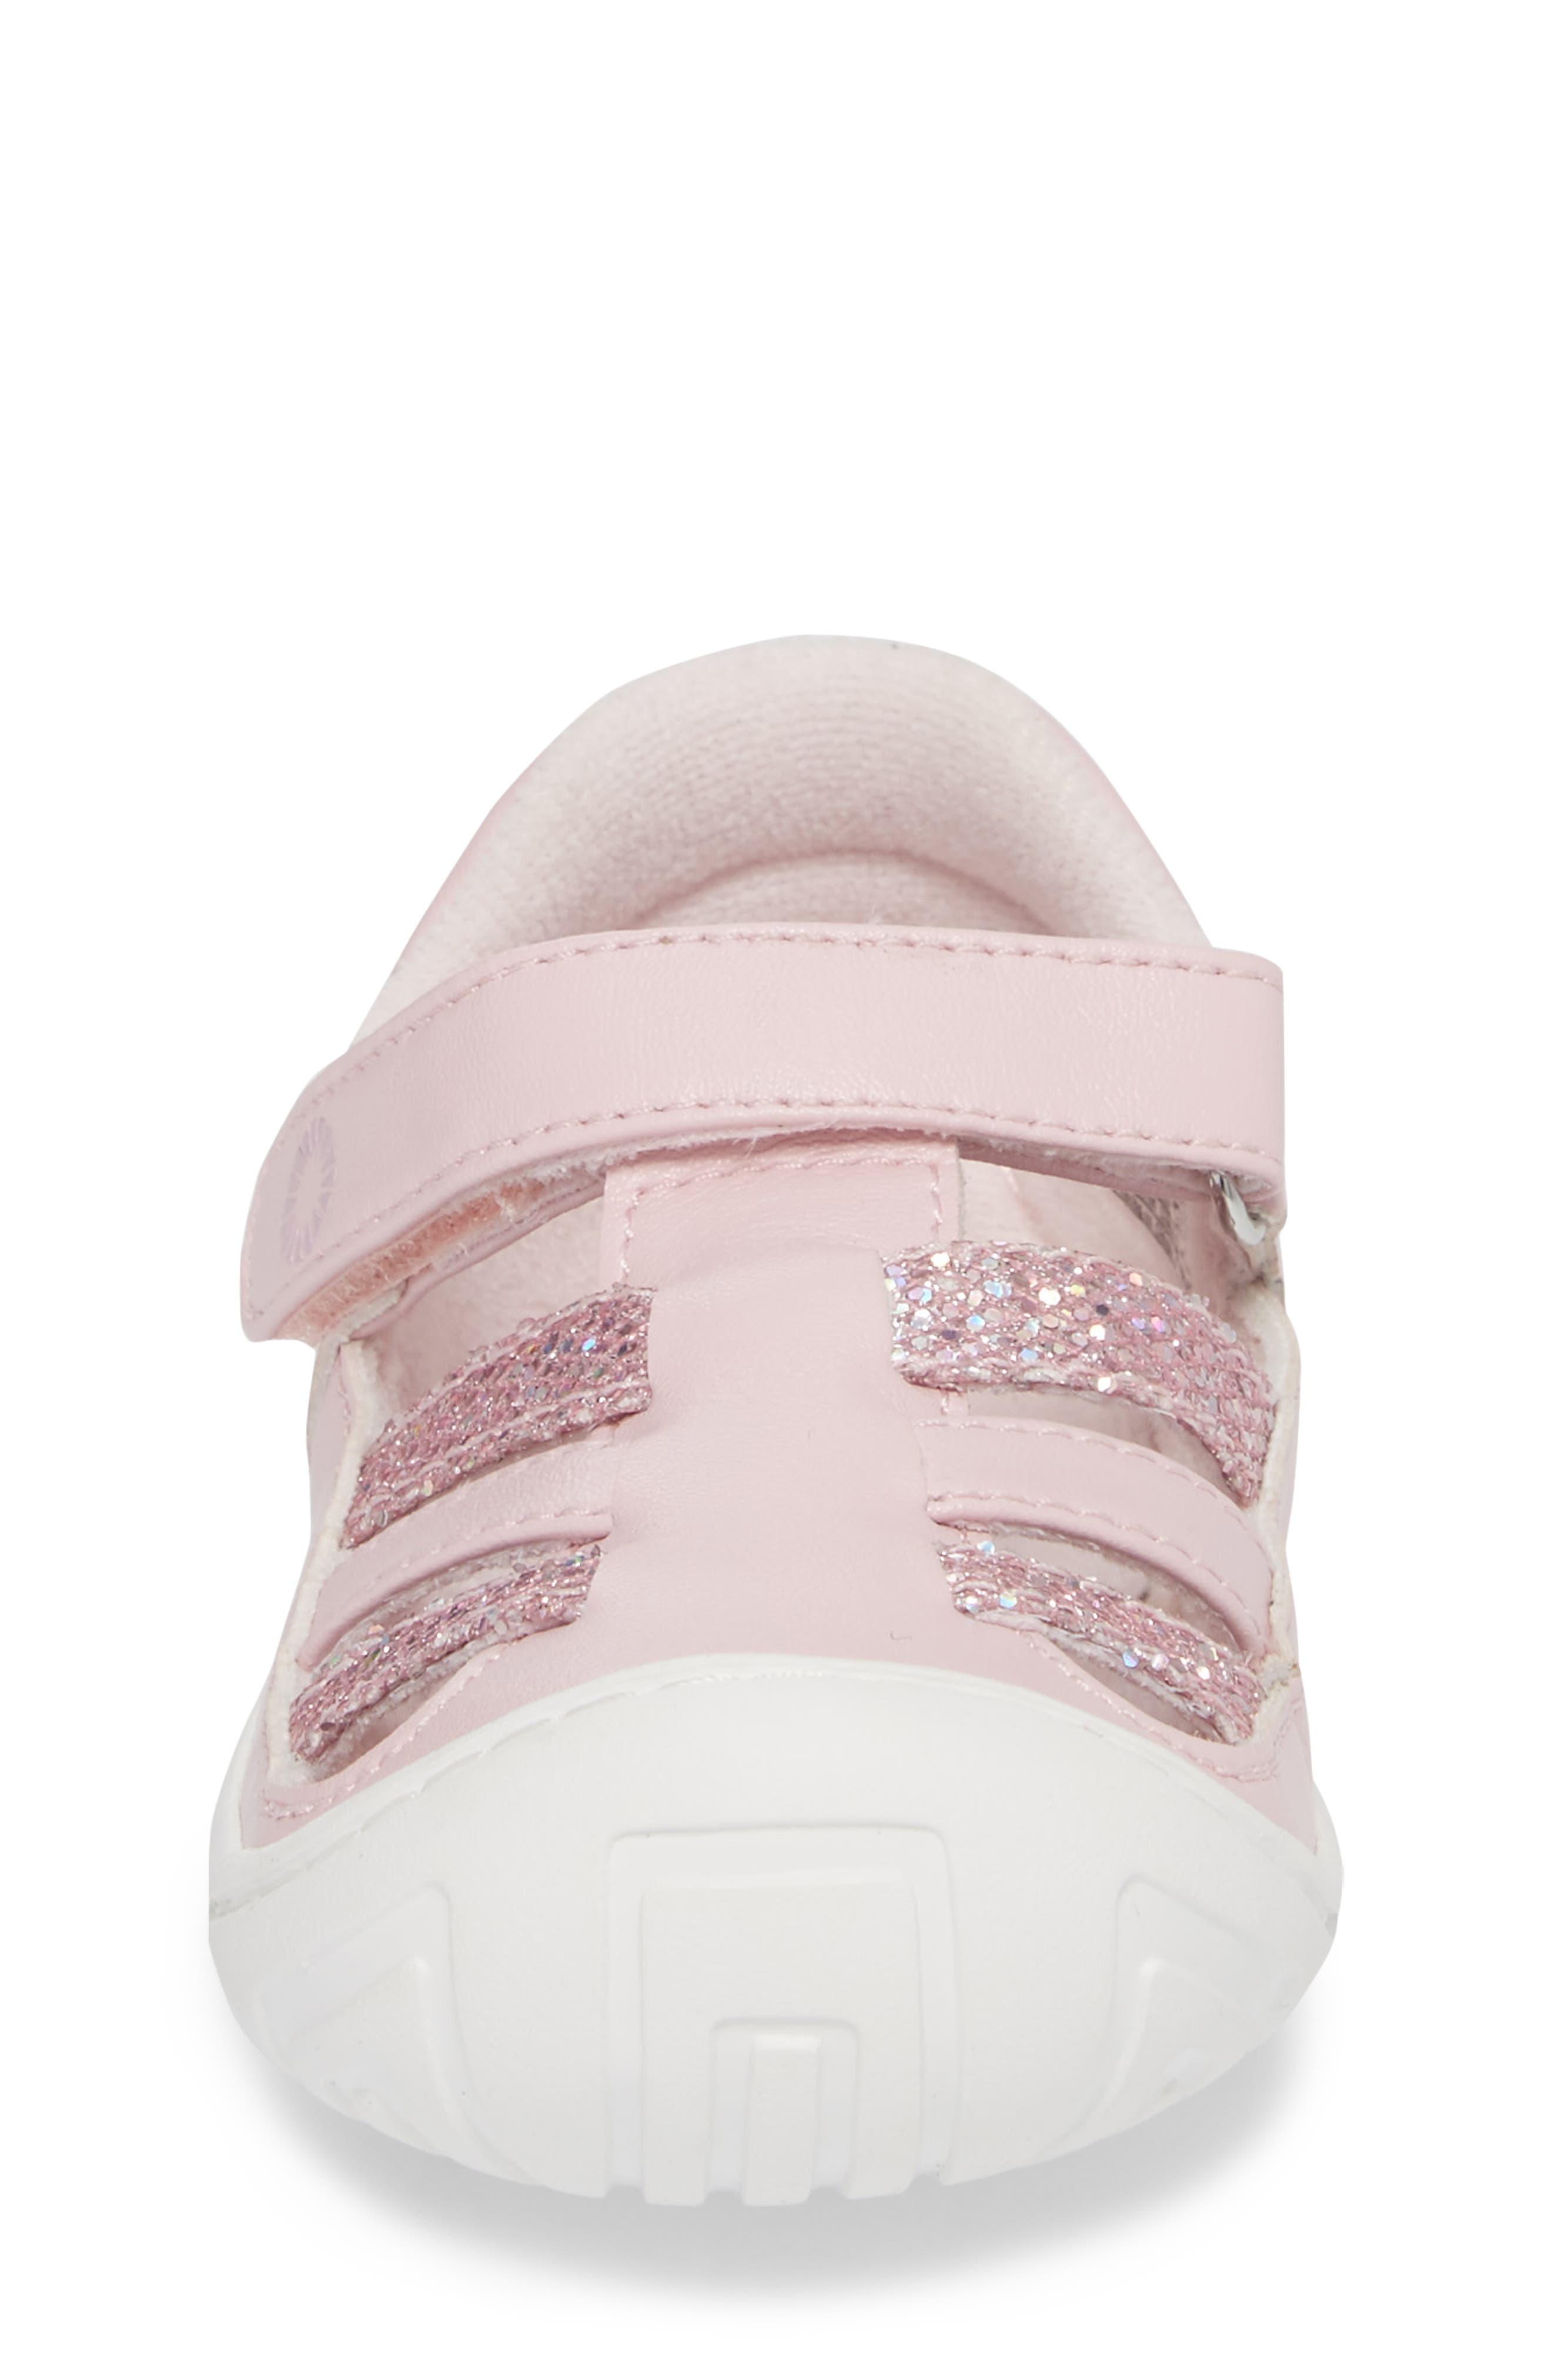 UGG<SUP>®</SUP>, Santore Glitter Sandal, Alternate thumbnail 4, color, SEASHELL PINK